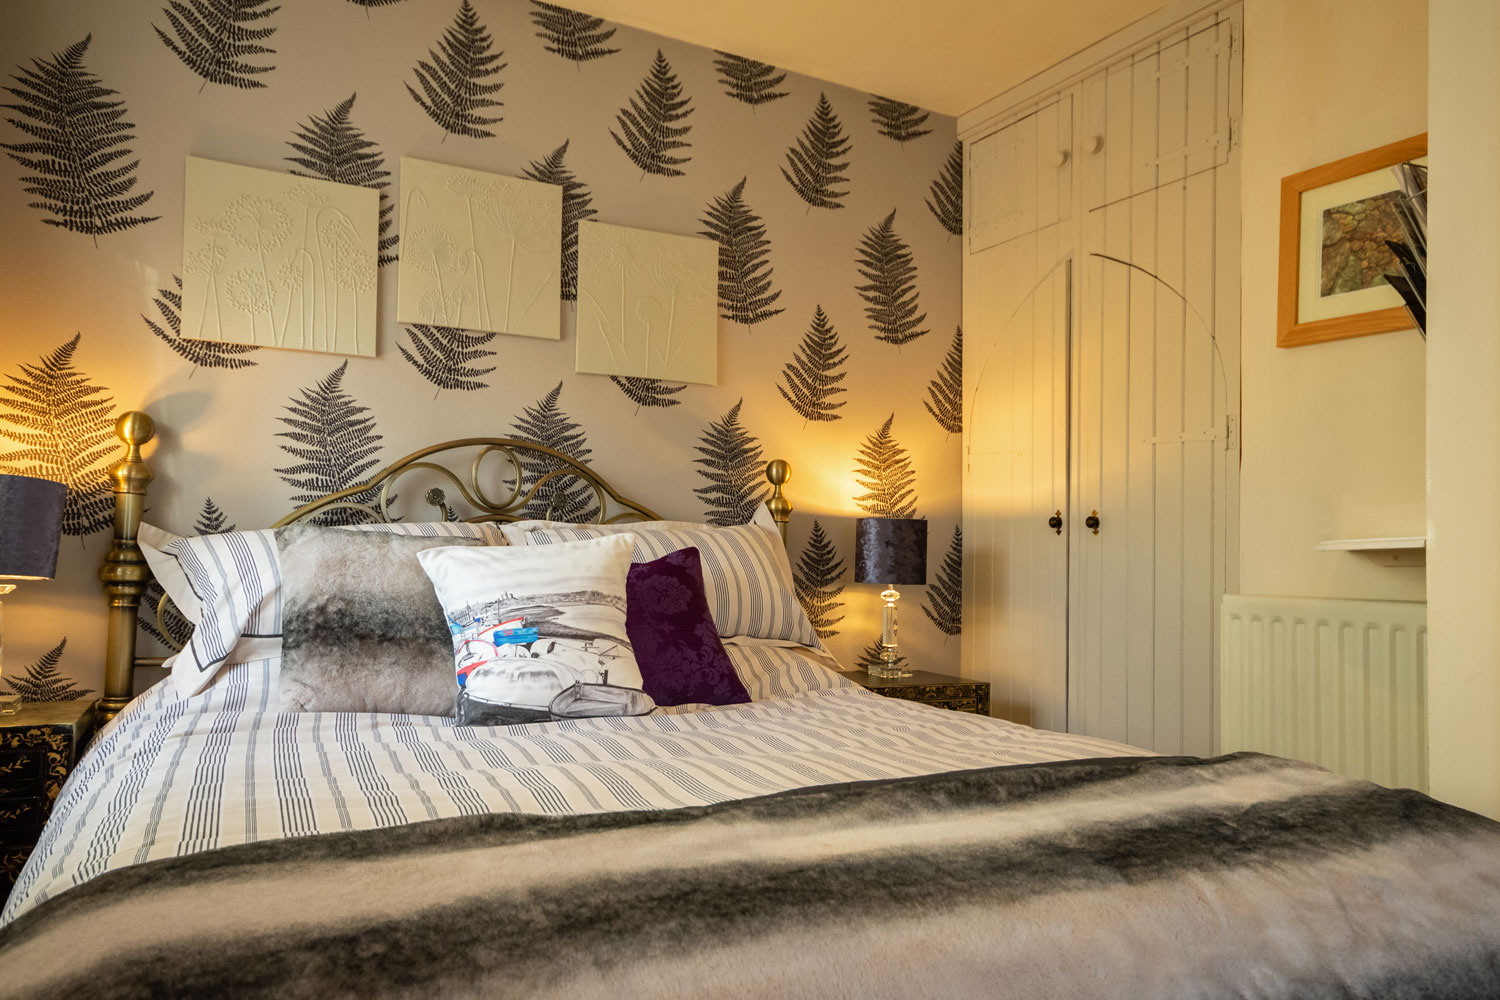 Bedroom at the Cottage at Coquet Meadows